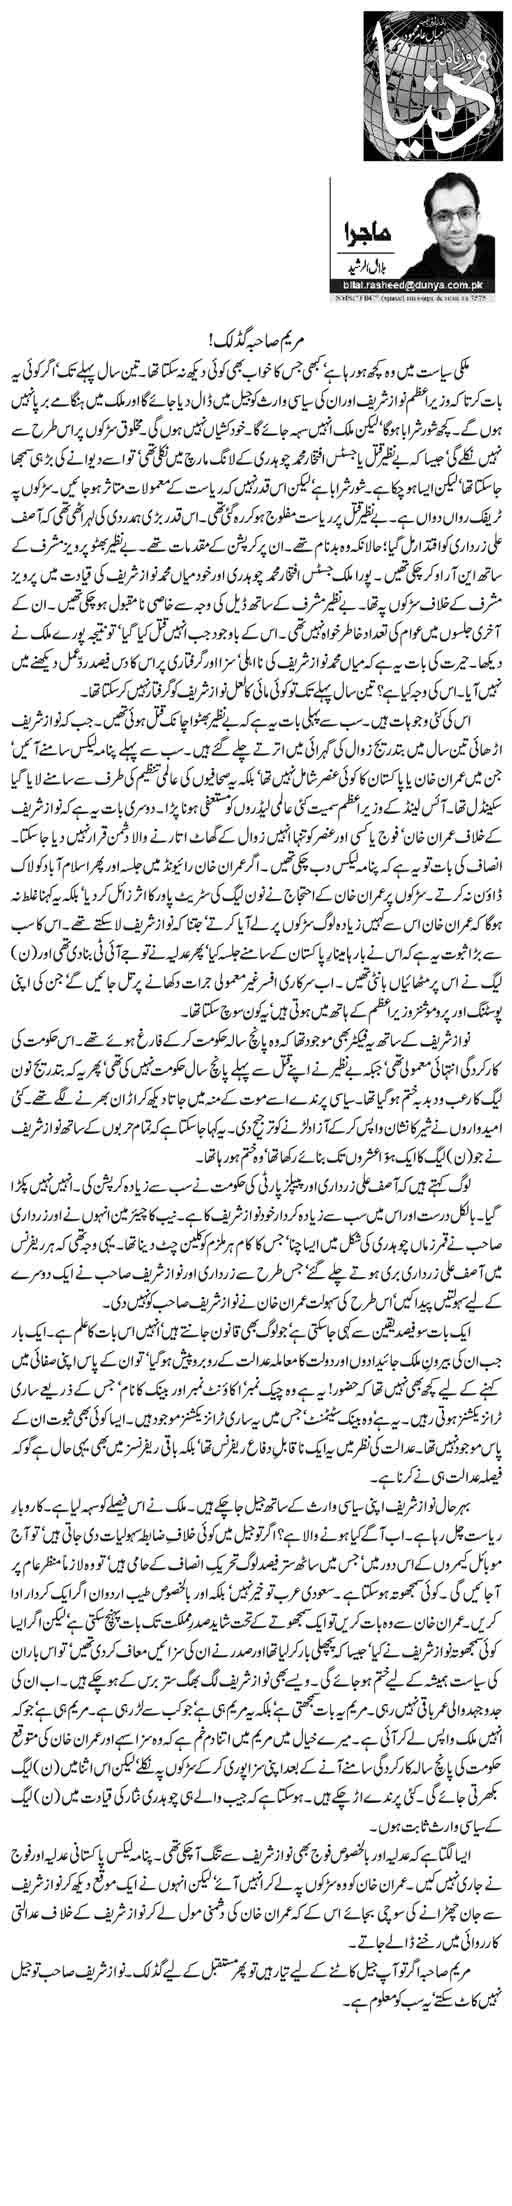 Maryam Sahiba Good Luck! | Bilal Ur Rasheed | Daily Urdu Columns